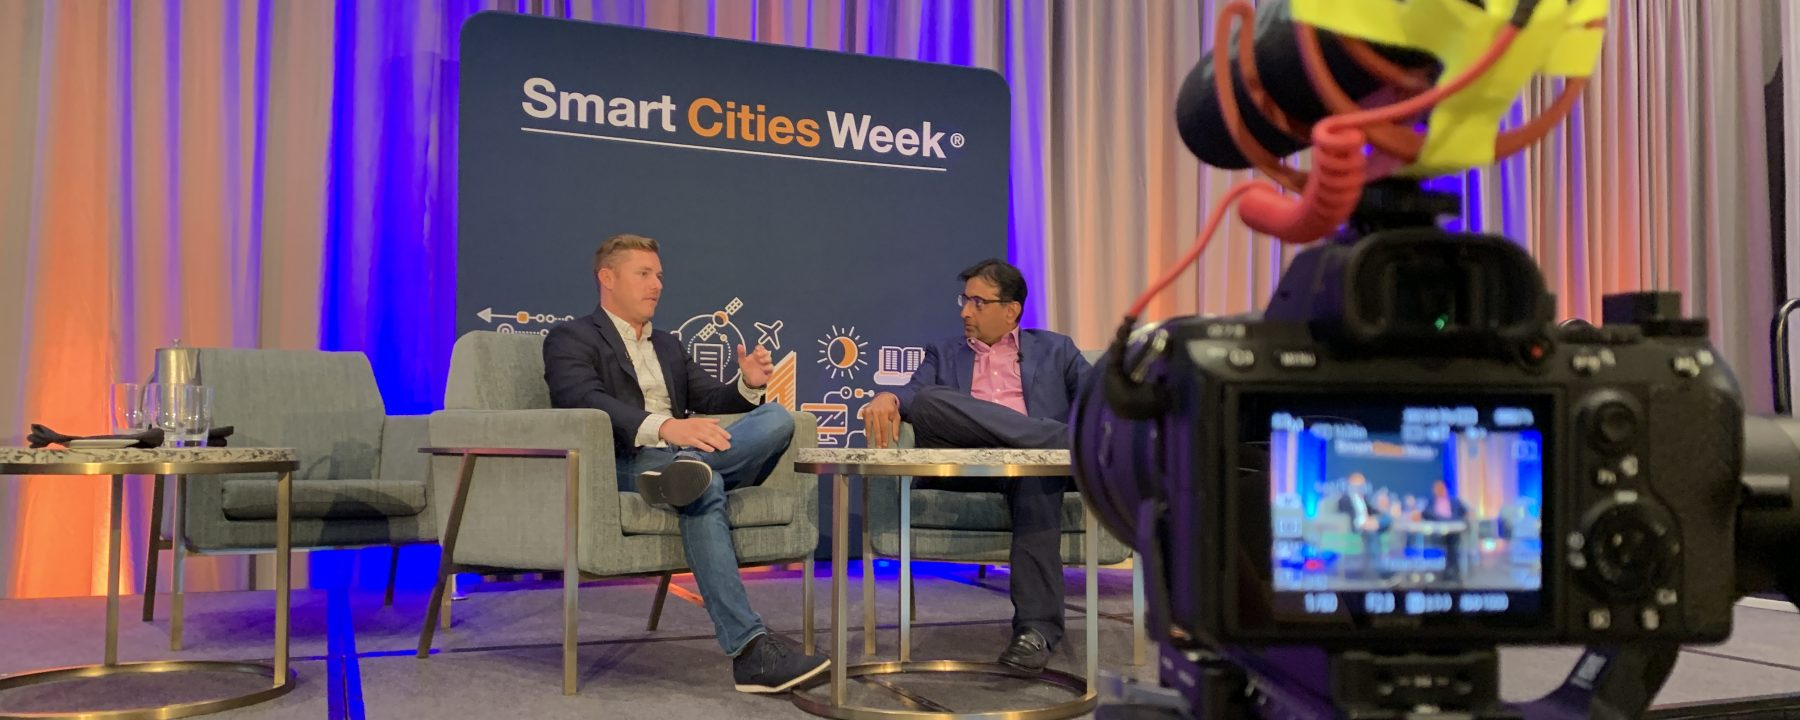 Going Green CEO Dylan Welch interviewing sustainable leaders at Smart Cities Week